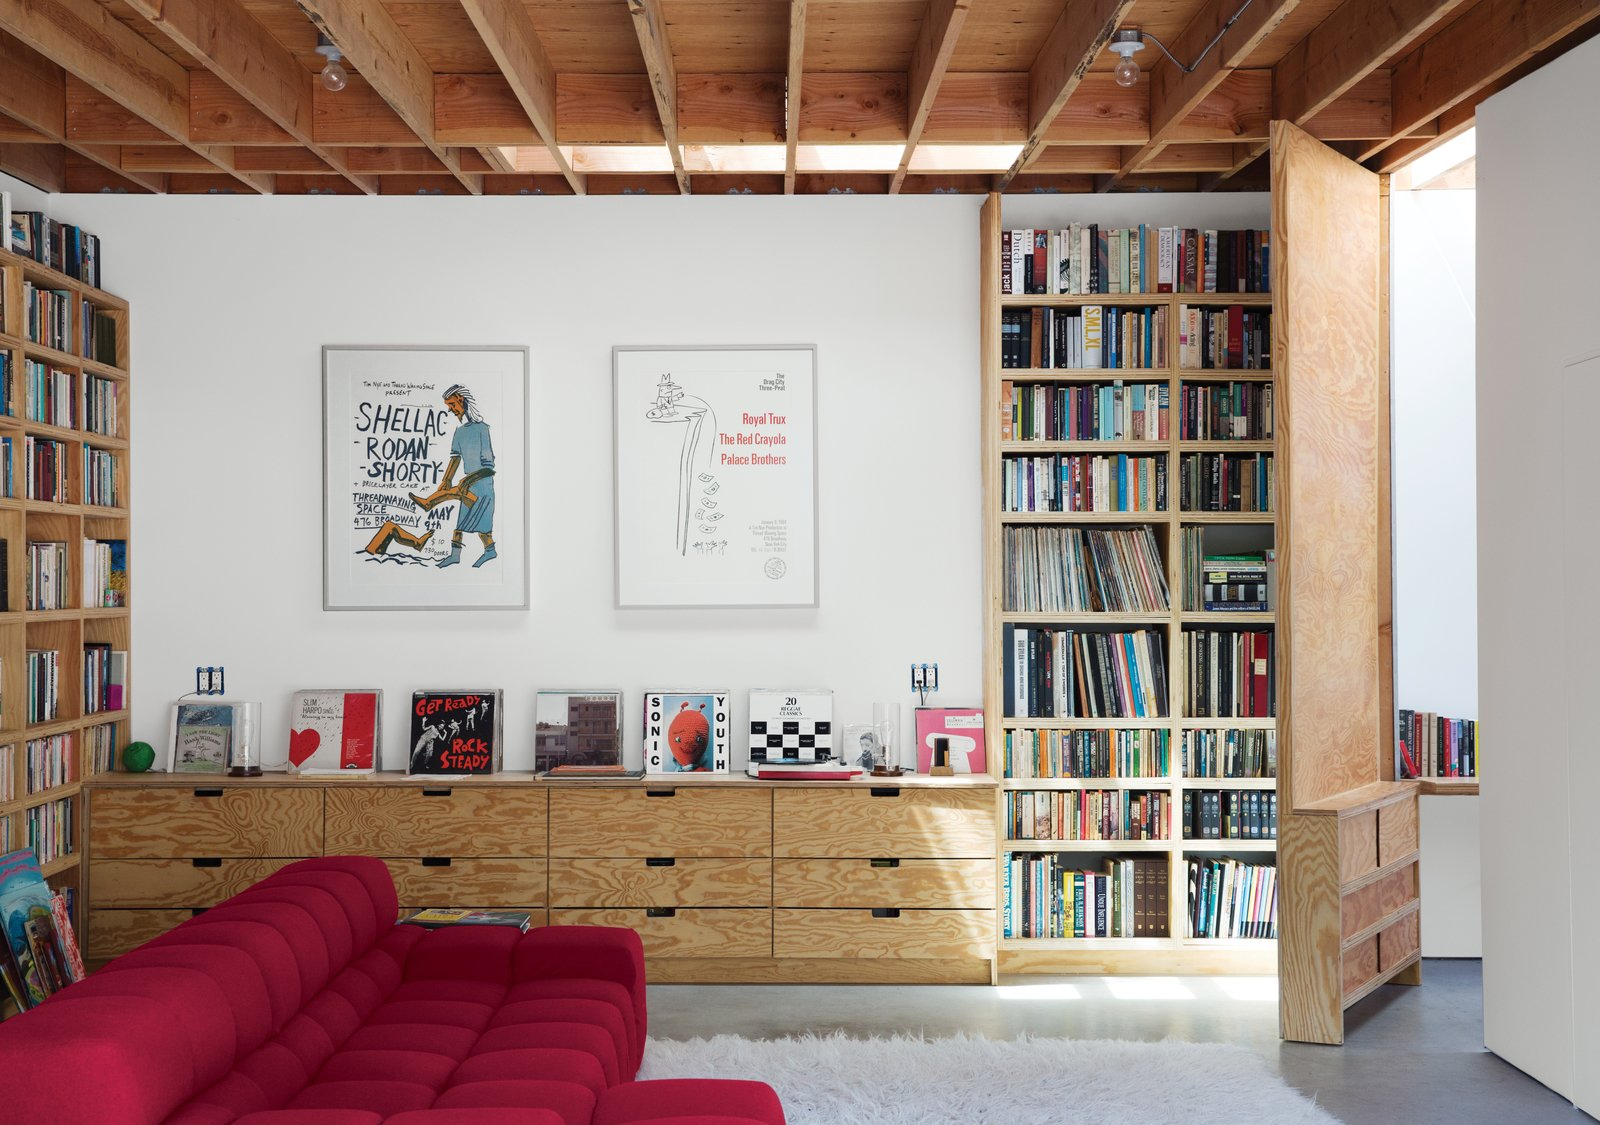 Garage, Garage Conversion Room Type, and Living Room Room Type After a tree falls in Santa Monica, a garage is reborn as a 600-square-foot family gathering spot.  30+ Modern Homes With Libraries by Matthew Keeshin